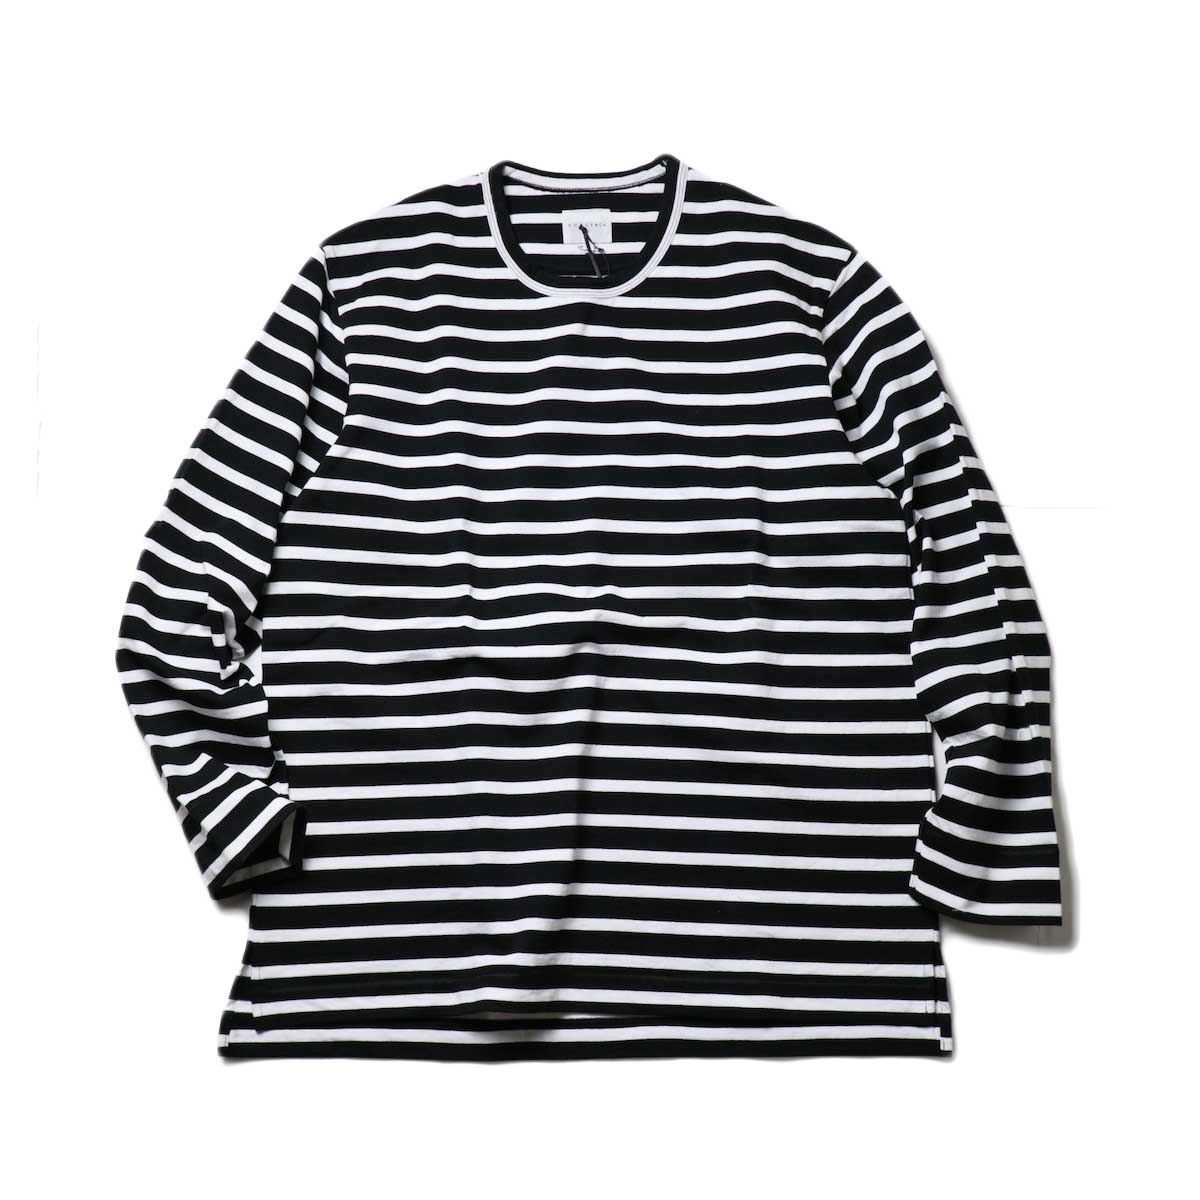 CURLY / SALFORD L/S BORDER TEE (Black / White)